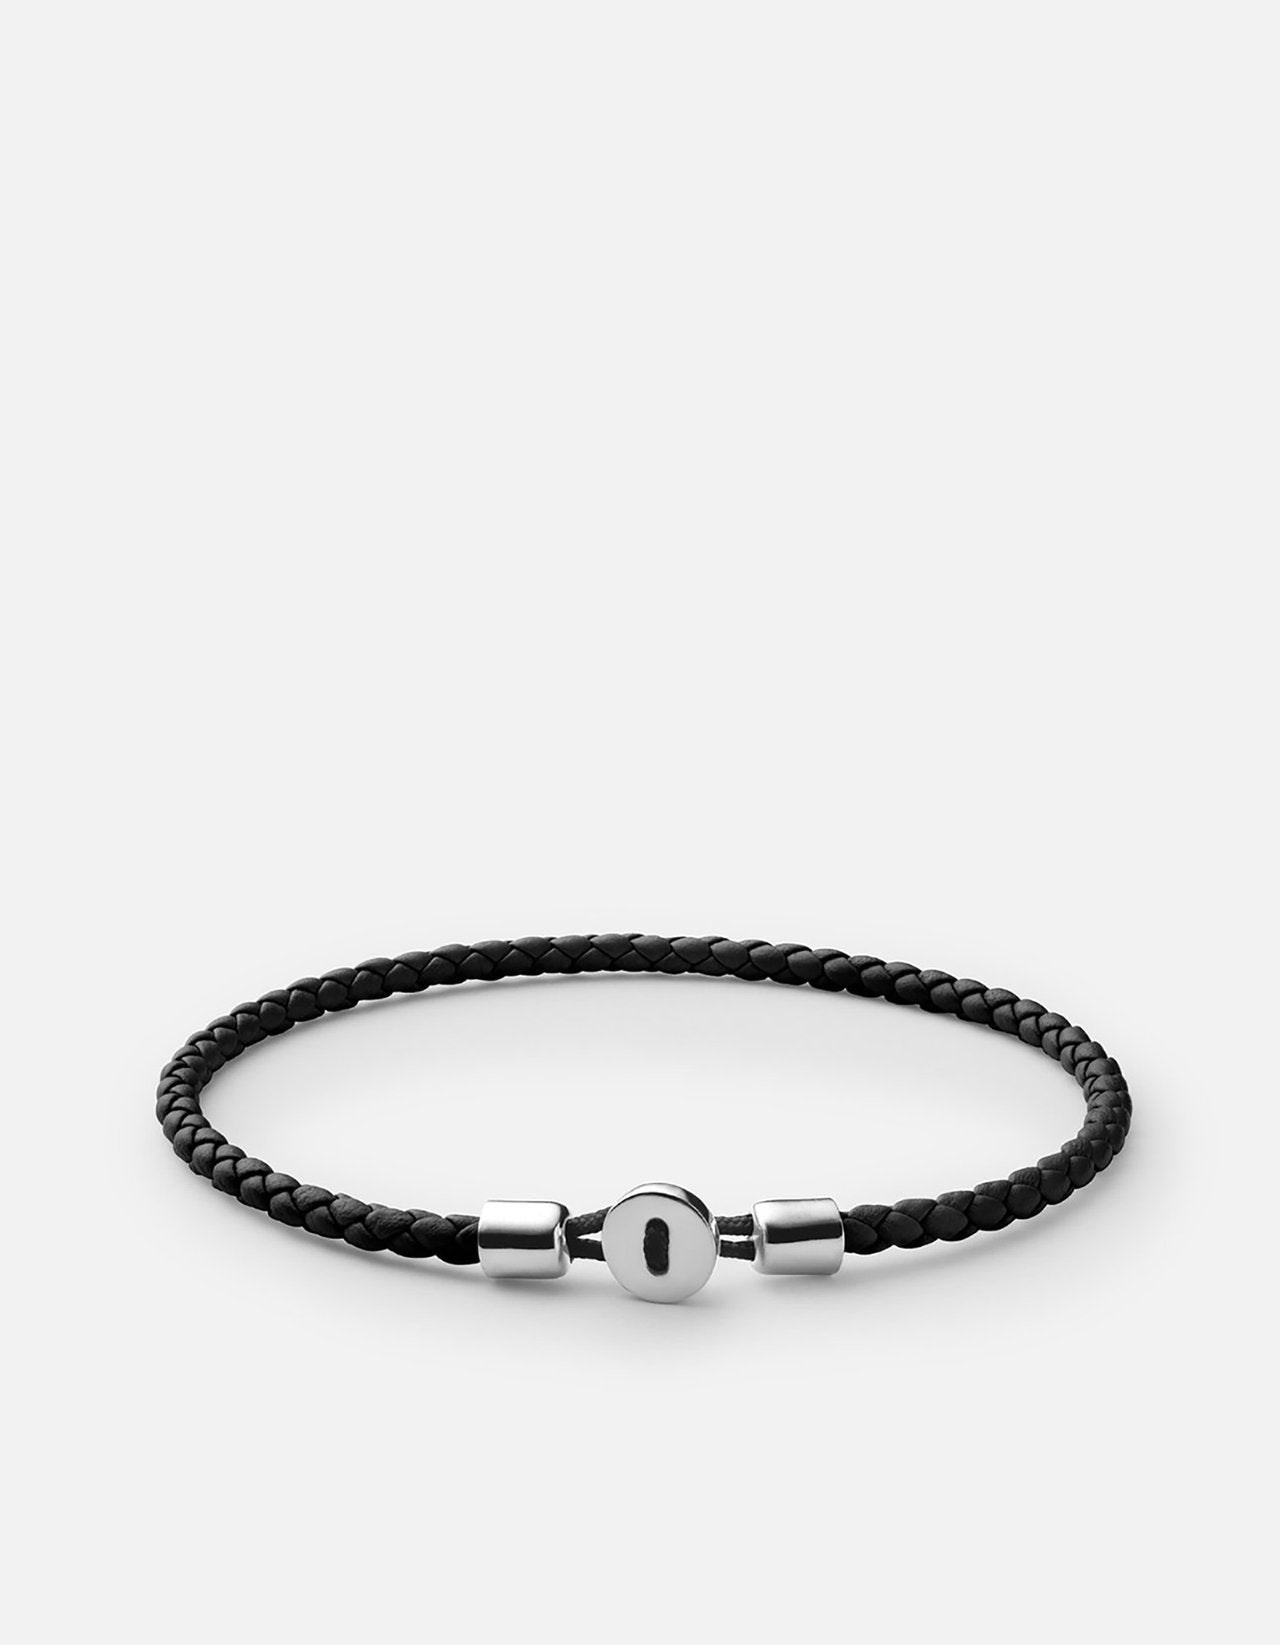 Miansai Nexus Leather Bracelet, Sterling Silver, Polished Black